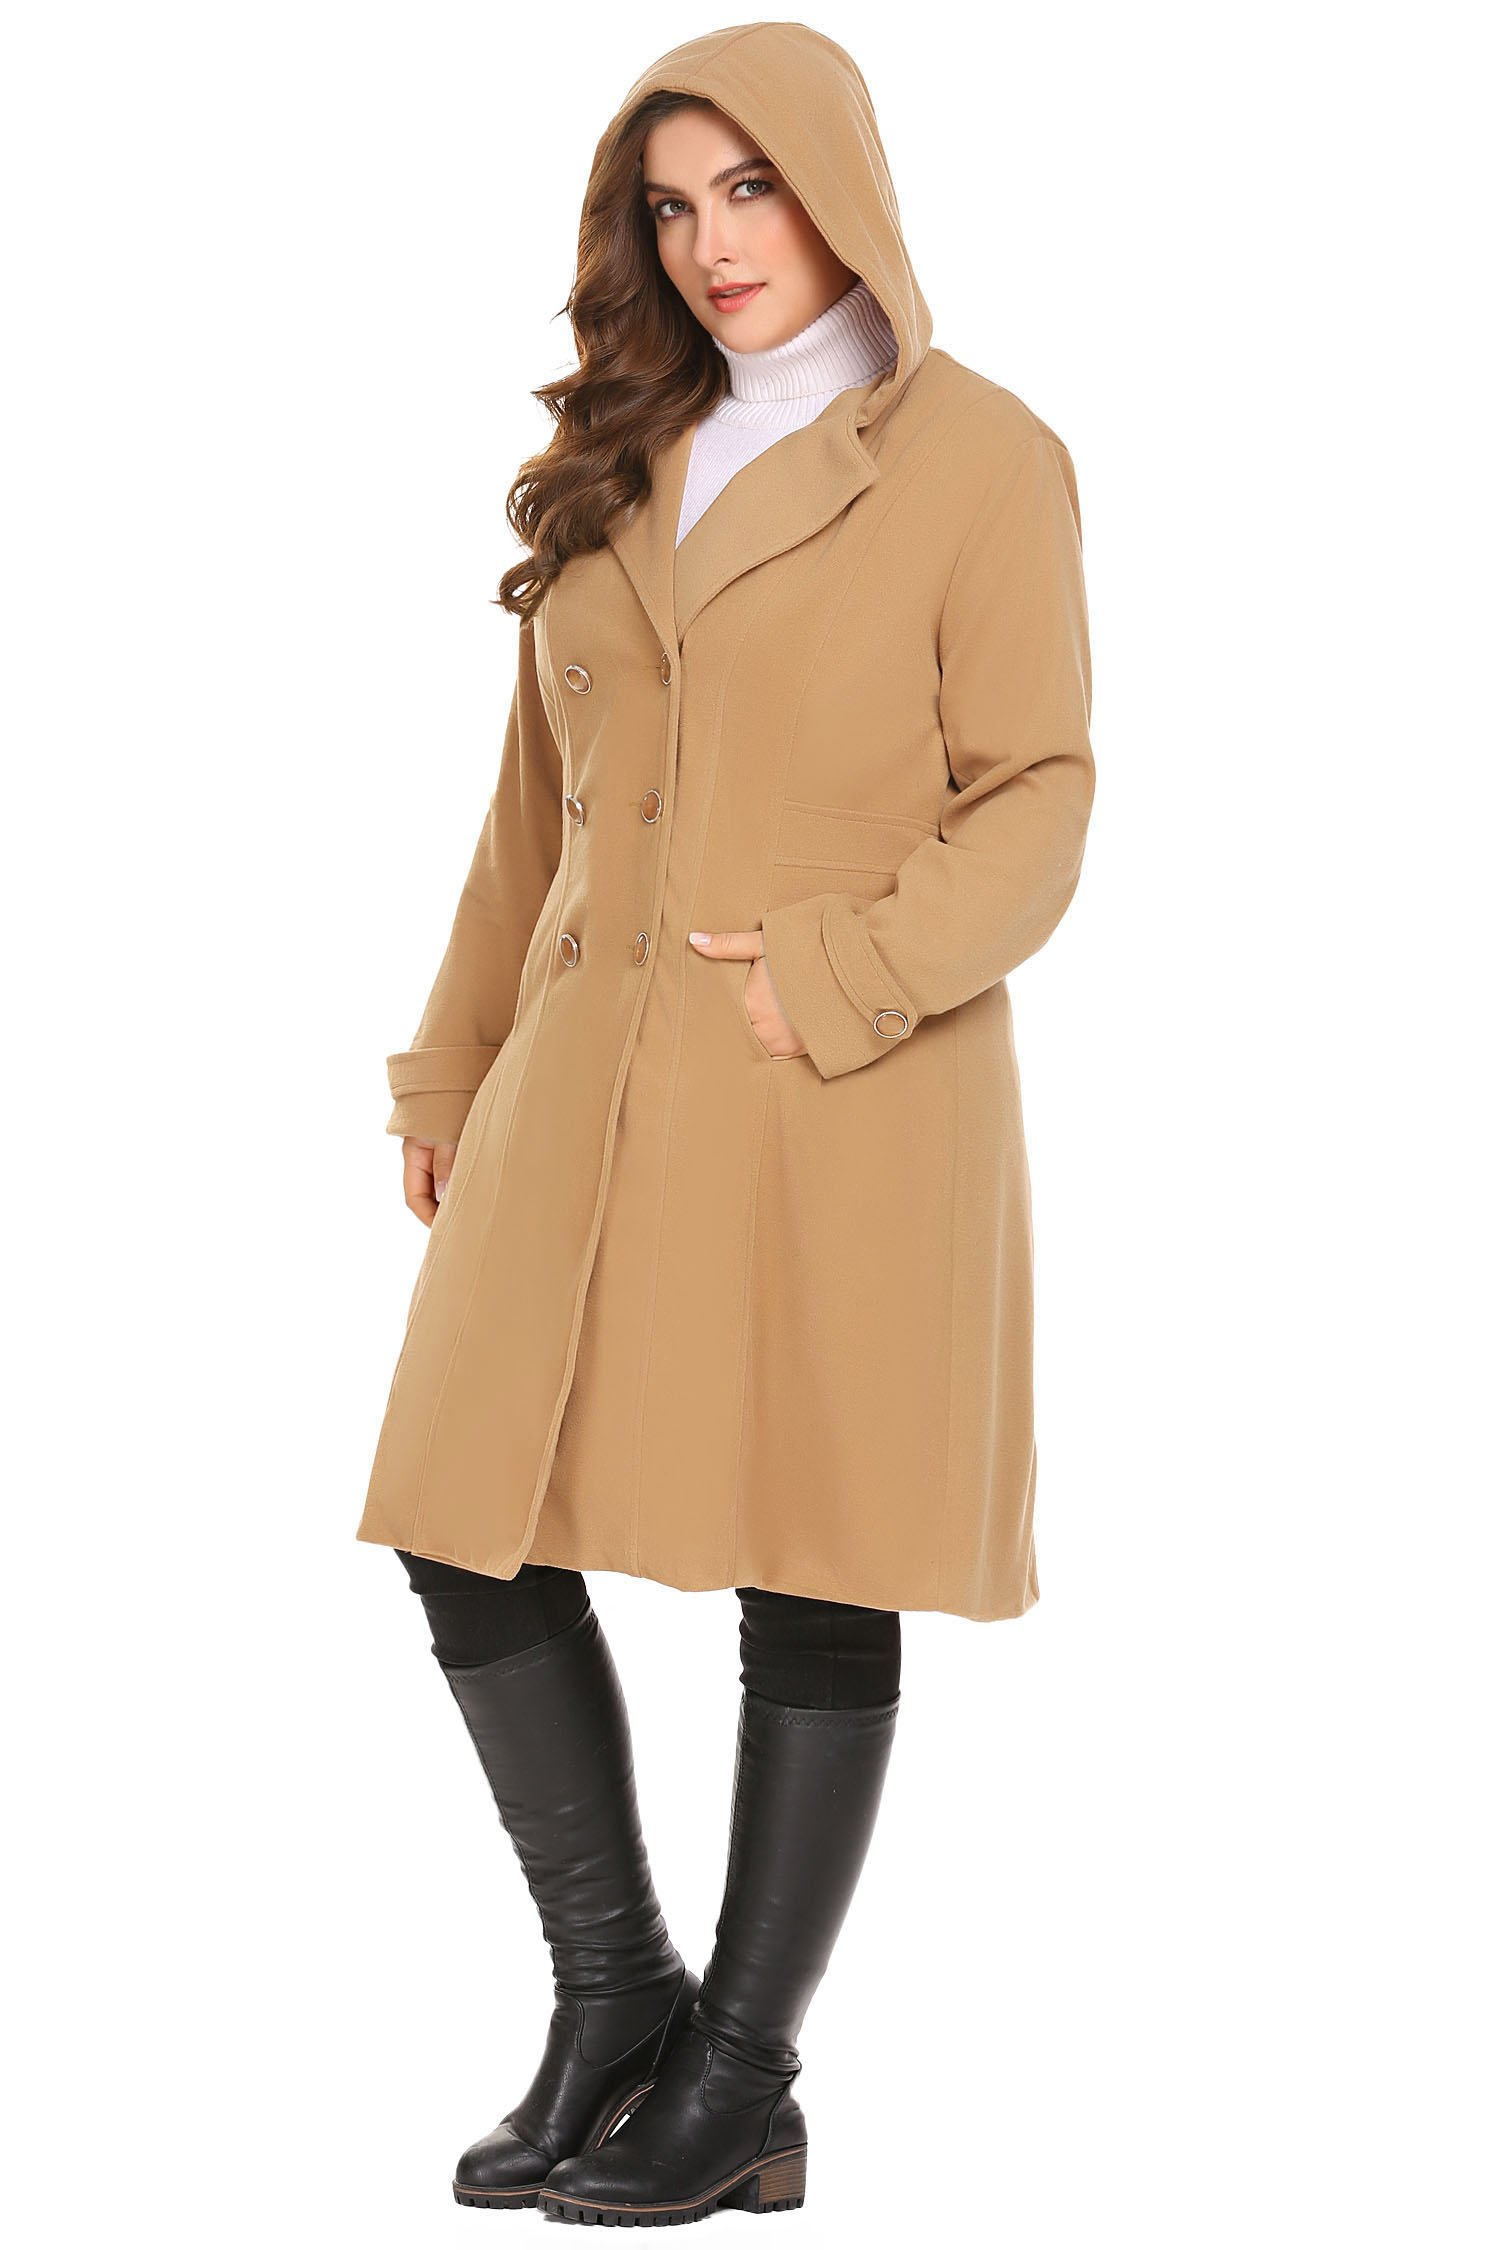 Zeagoo Women Plus Size Double Breasted Wool Elegant Long Lined Lightweight Trench Coat (16W-24W) by Zeagoo (Image #5)